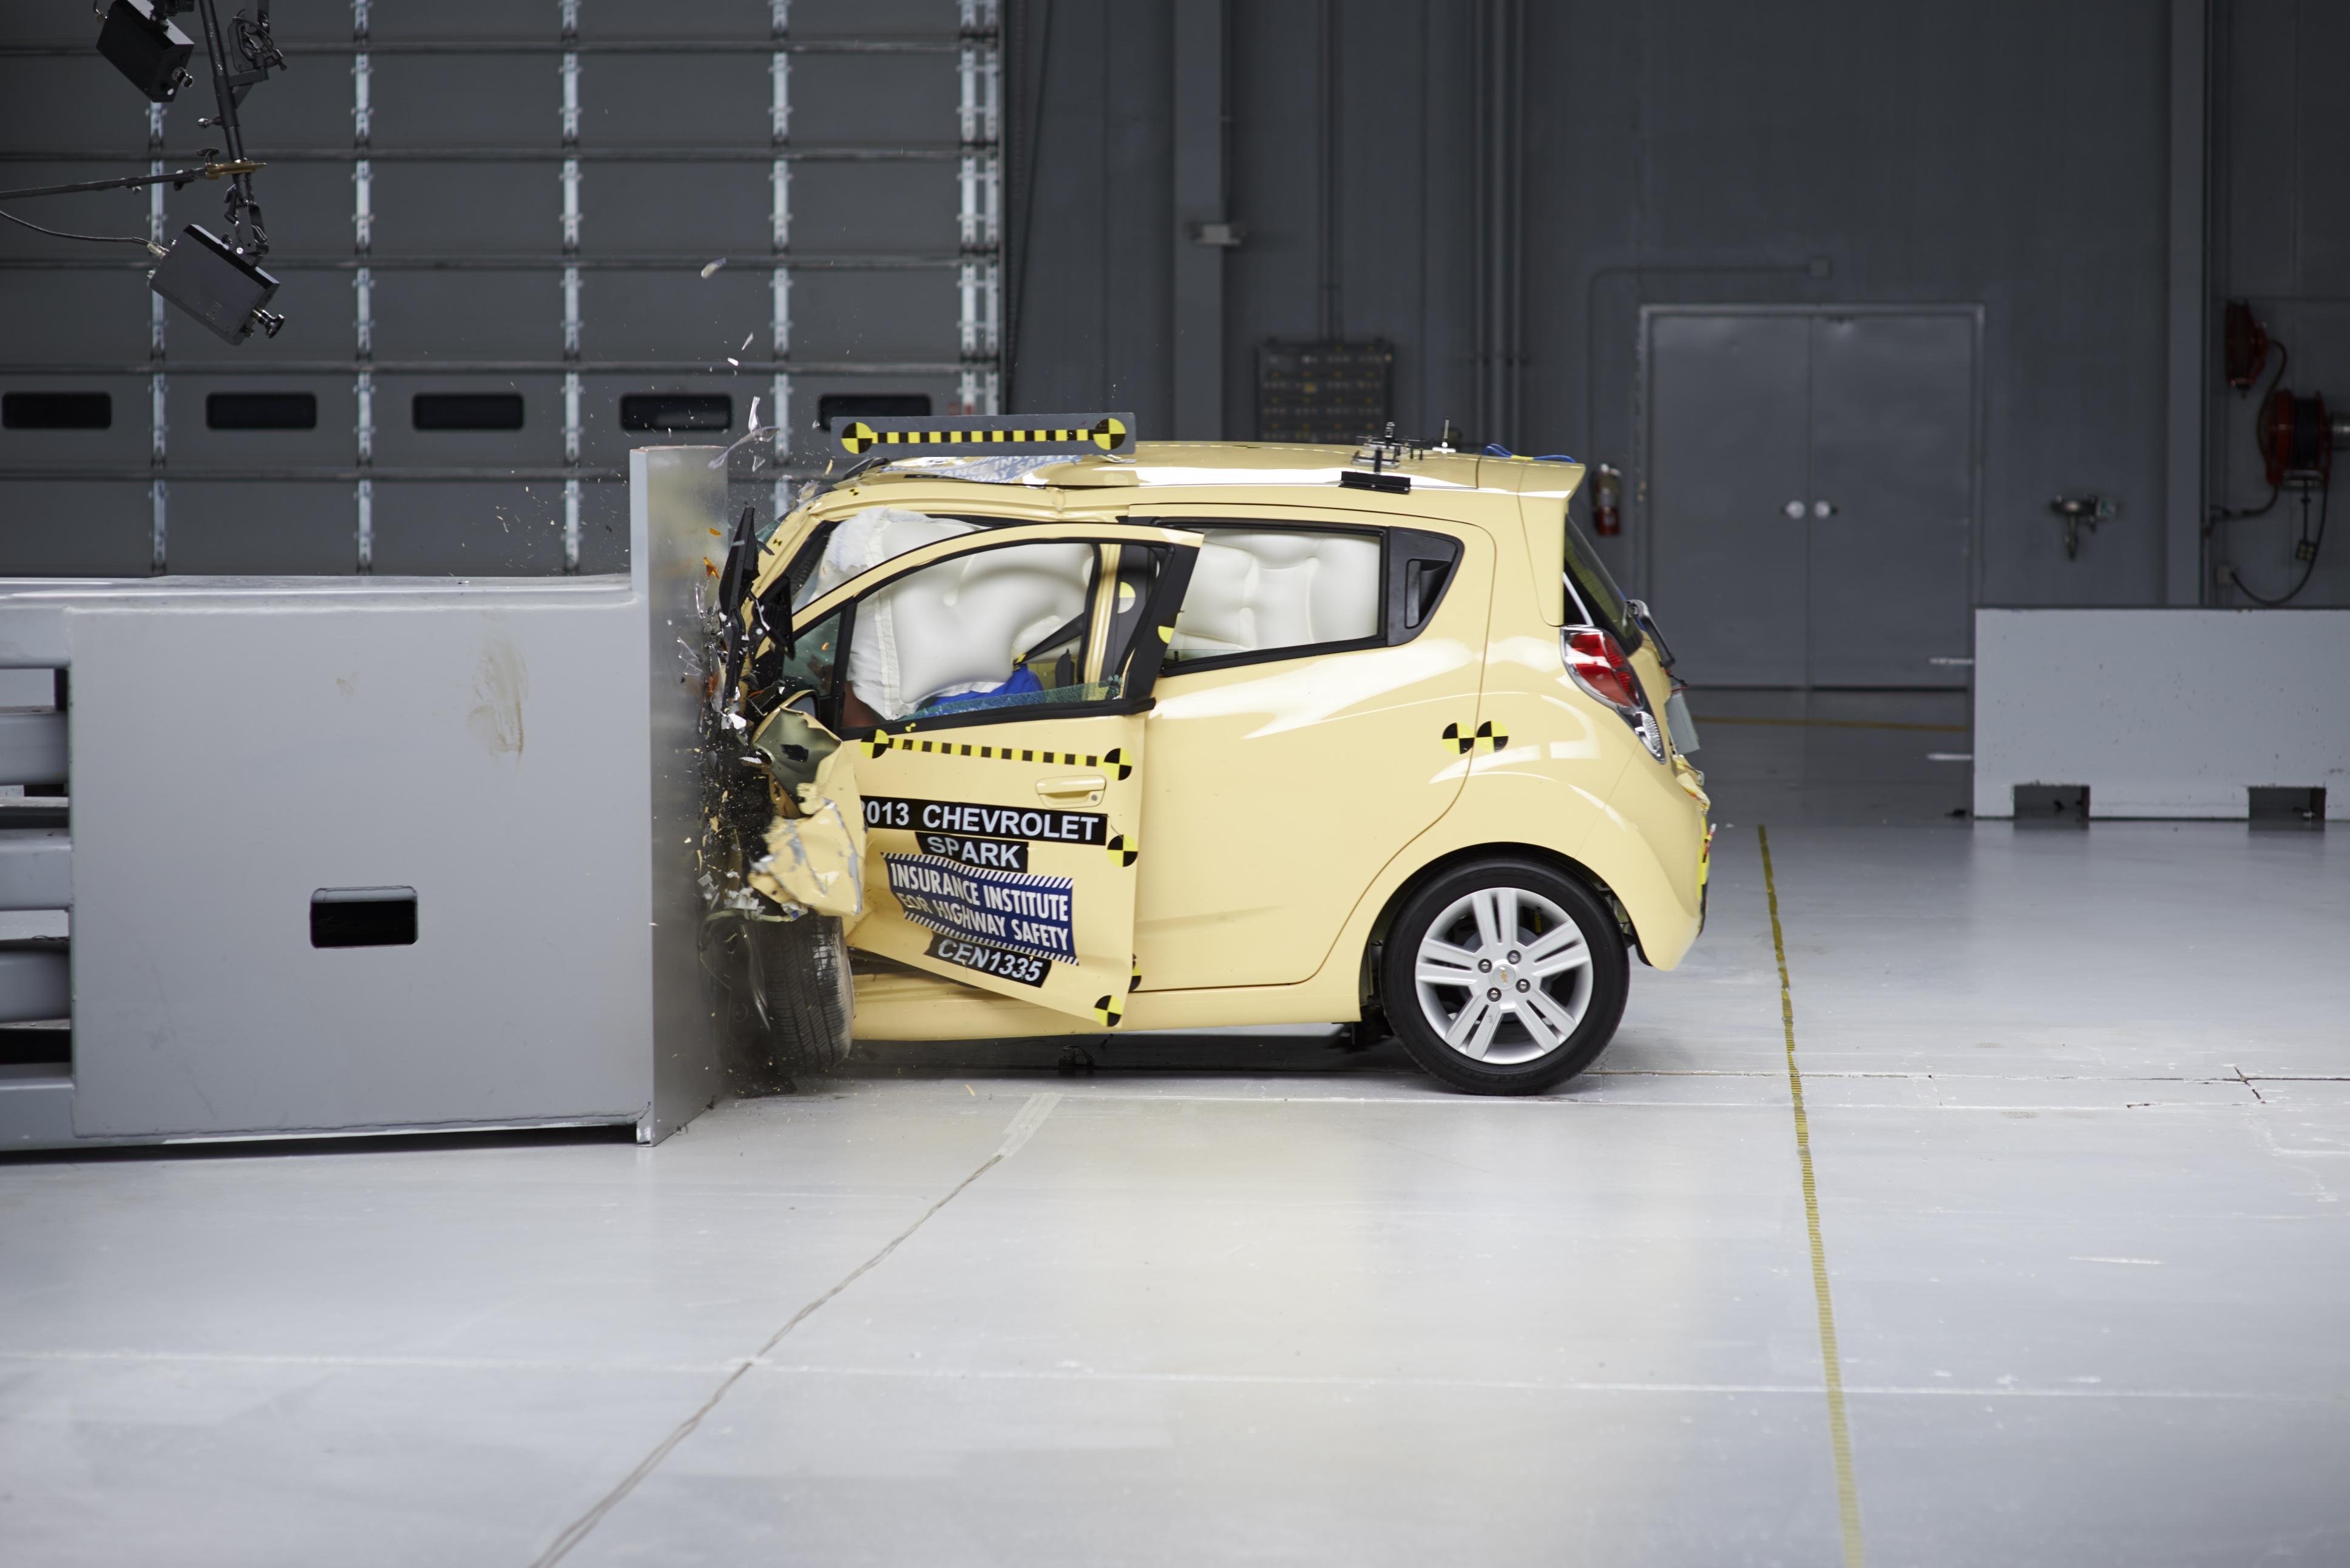 Very Small Cars Fail New IIHS Small-Overlap Frontal Crash Test